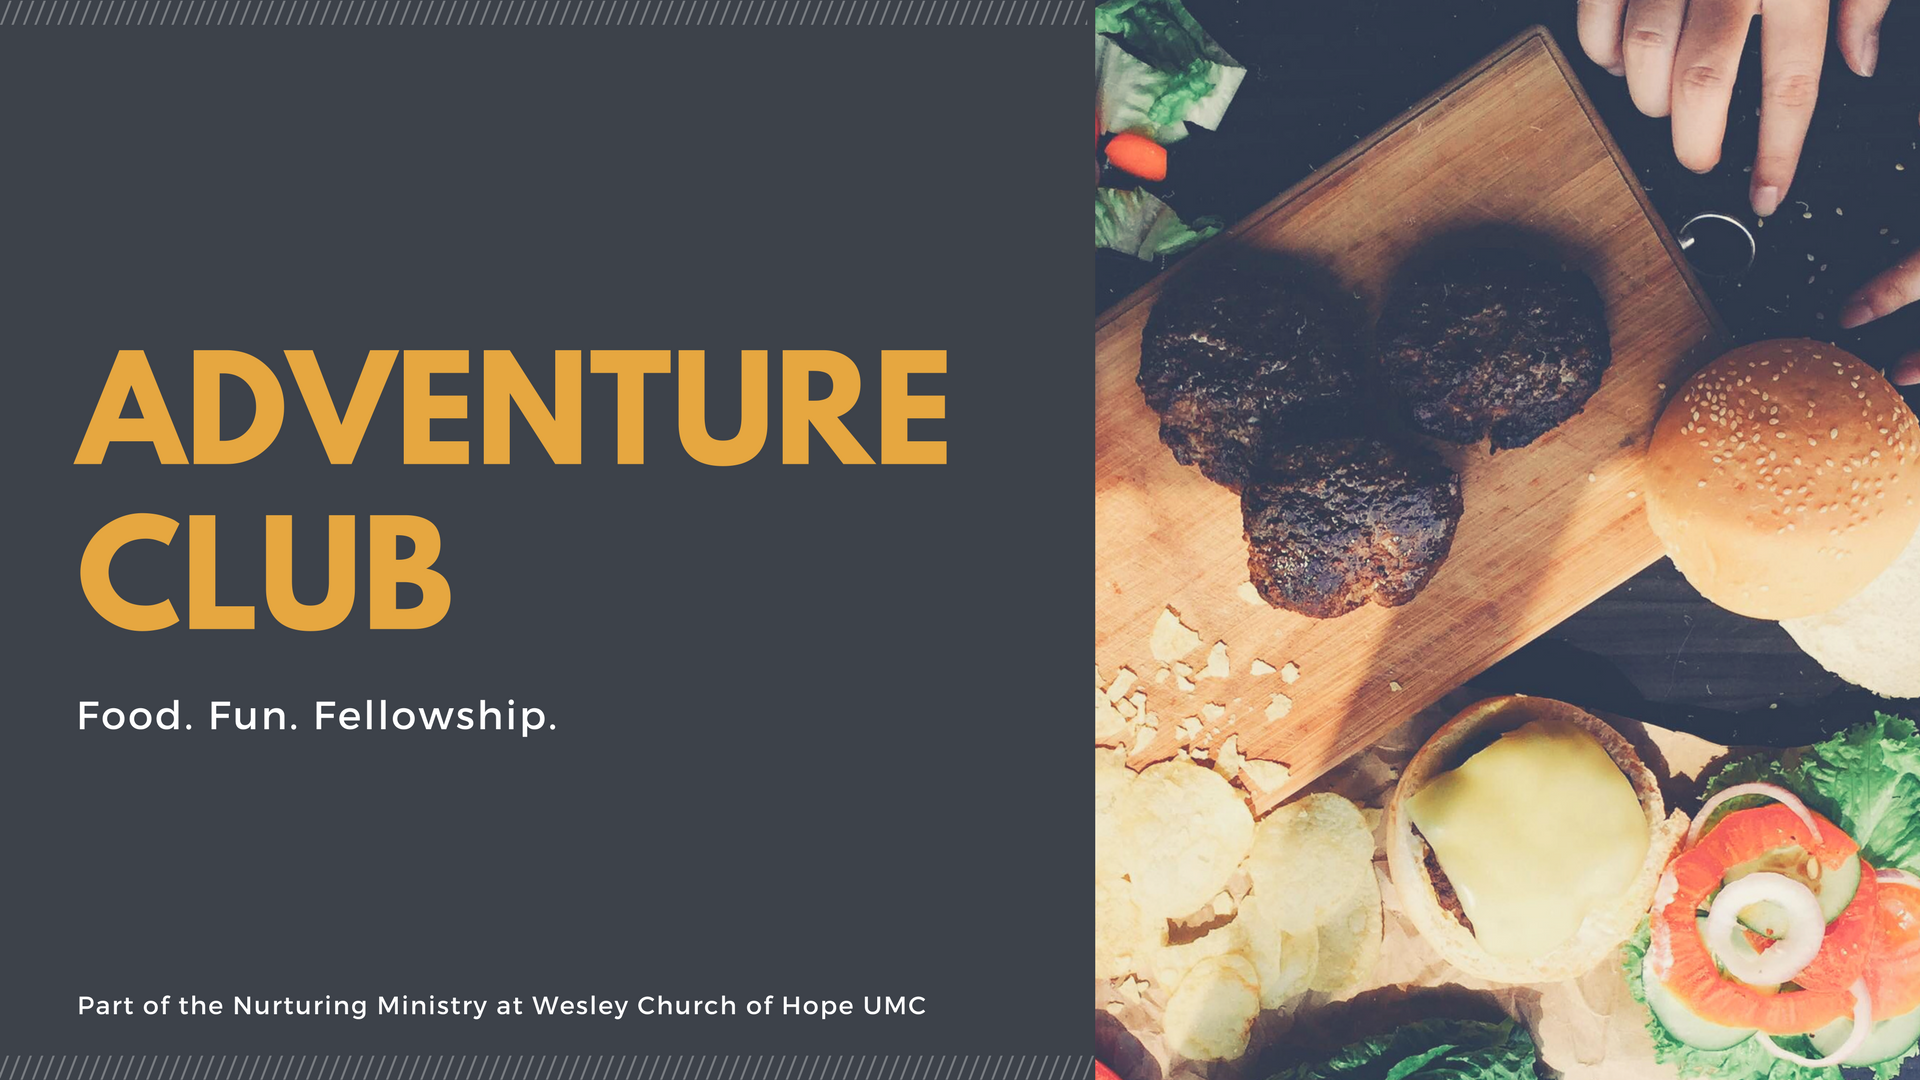 Adventure Club - Nurturing Ministry at Wesley Church of Hope